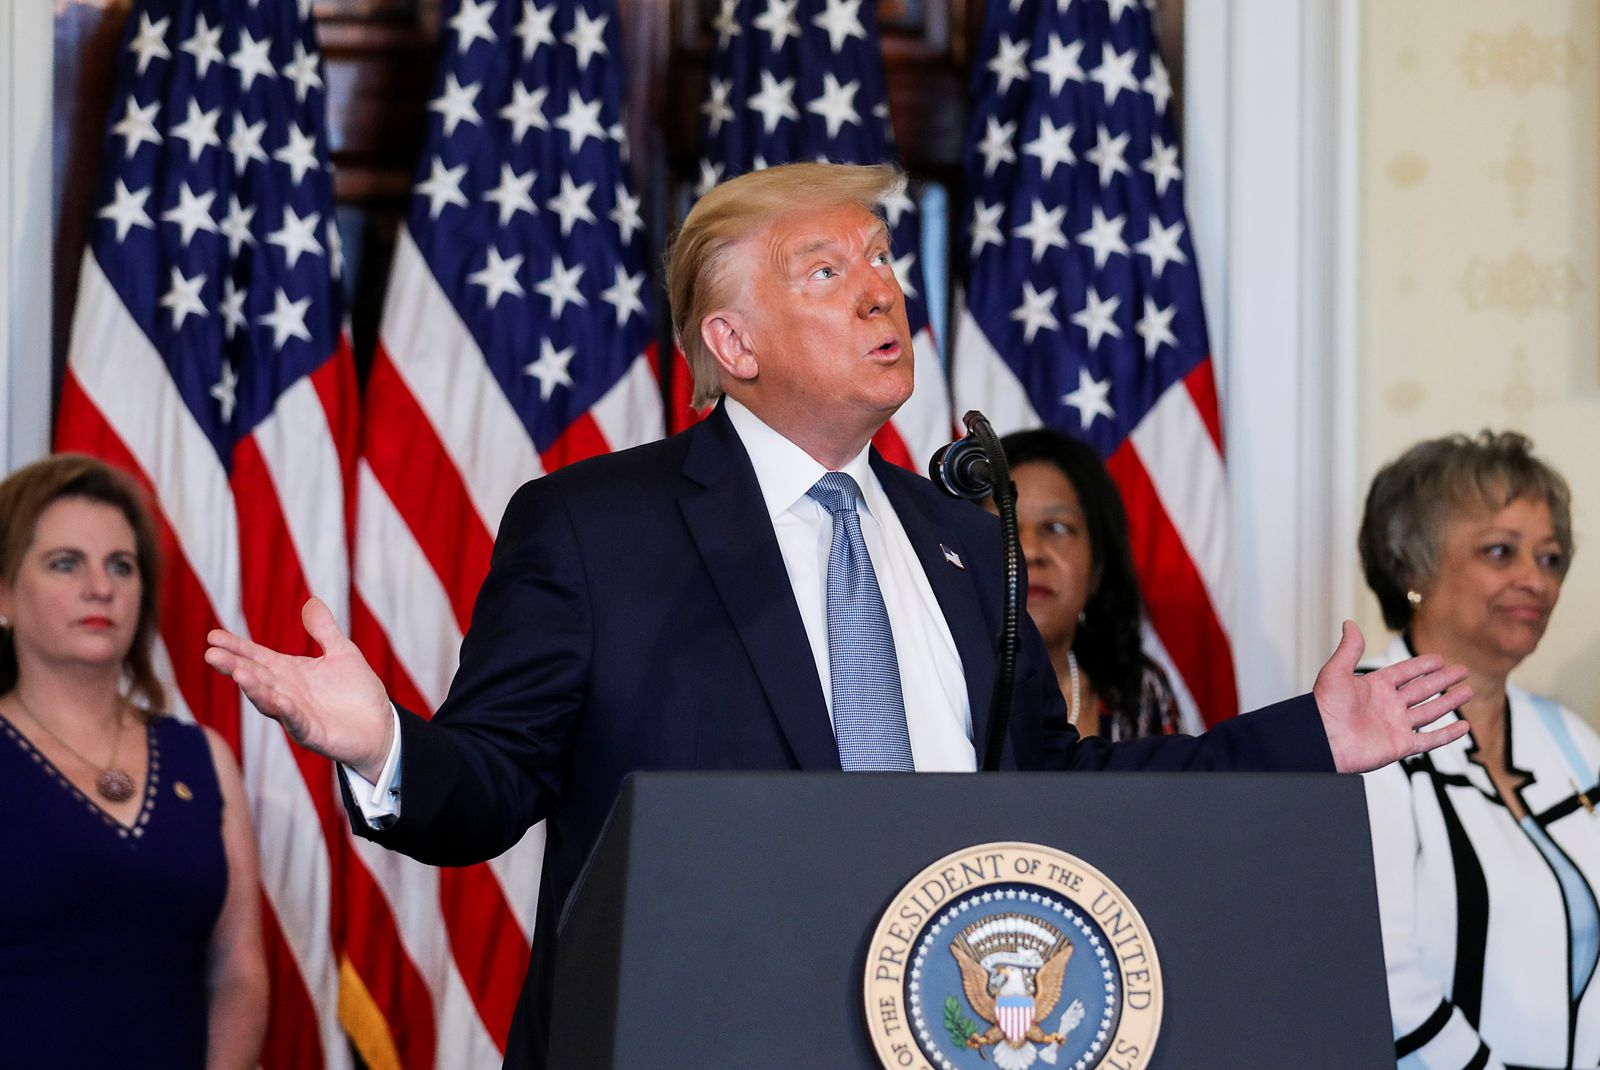 U.S. President Trump hosts signing ceremony marking 100th anniversary of 19th Amendment ratification at the White House in Washington